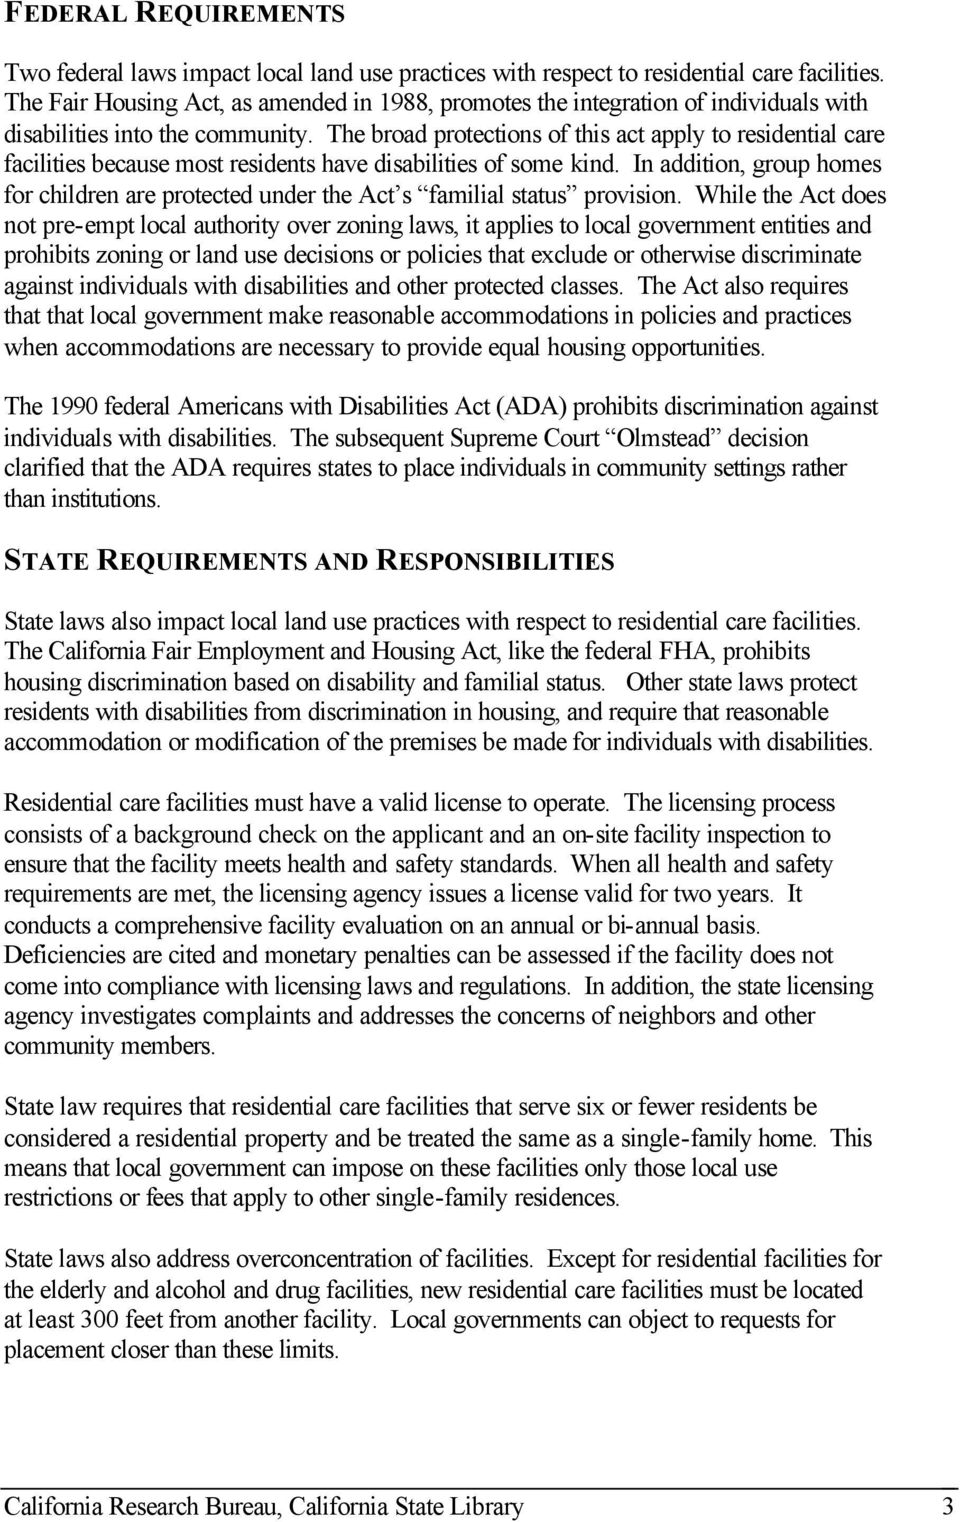 The broad protections of this act apply to residential care facilities because most residents have disabilities of some kind.